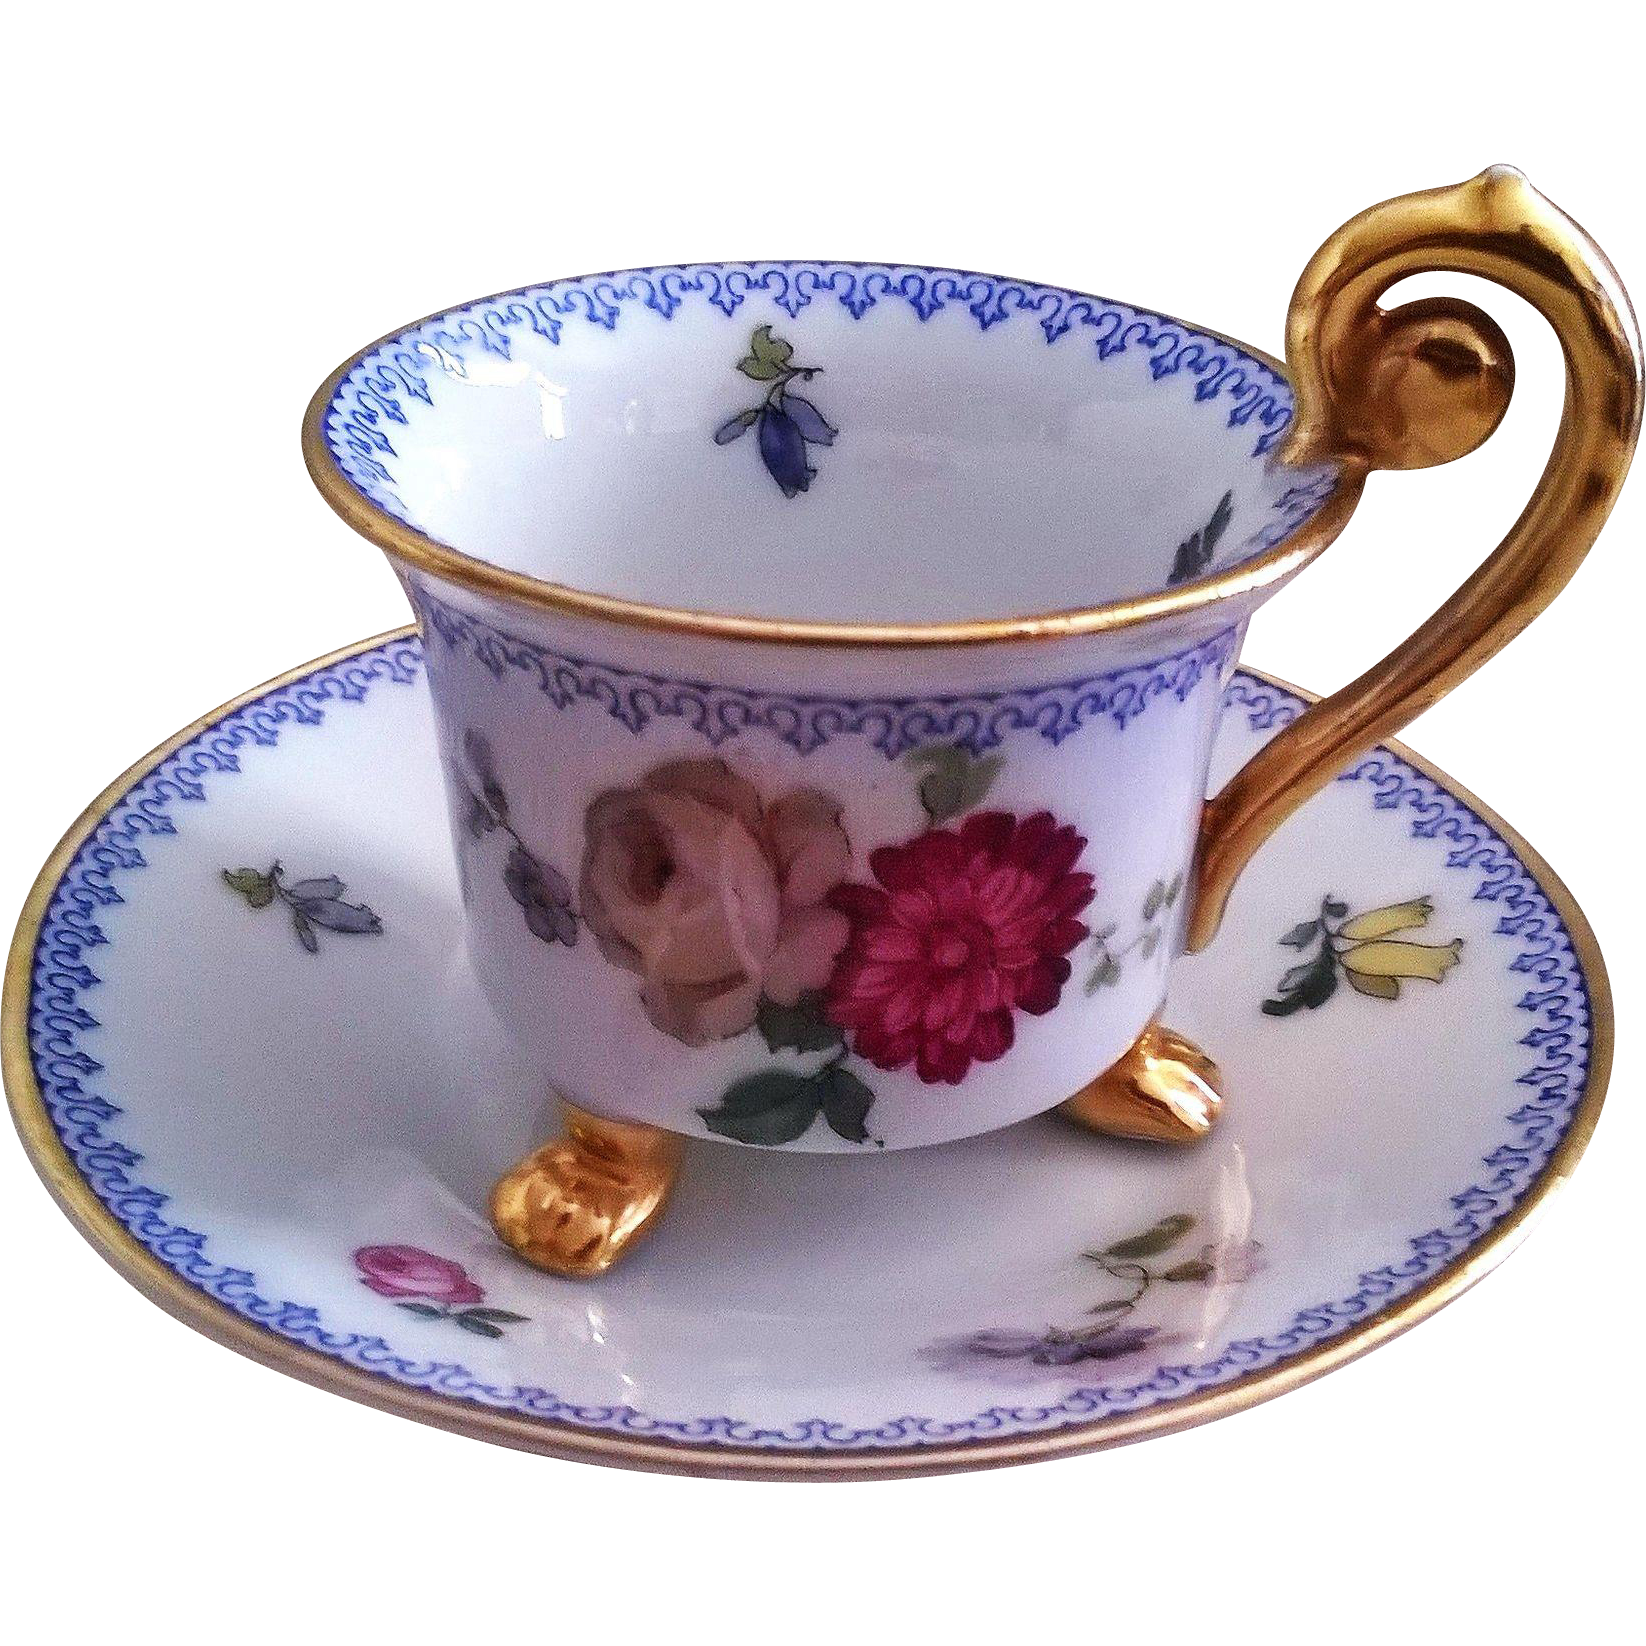 Thomas of Bavaria Footed Demitasse Cup & Saucer Pattern #3239